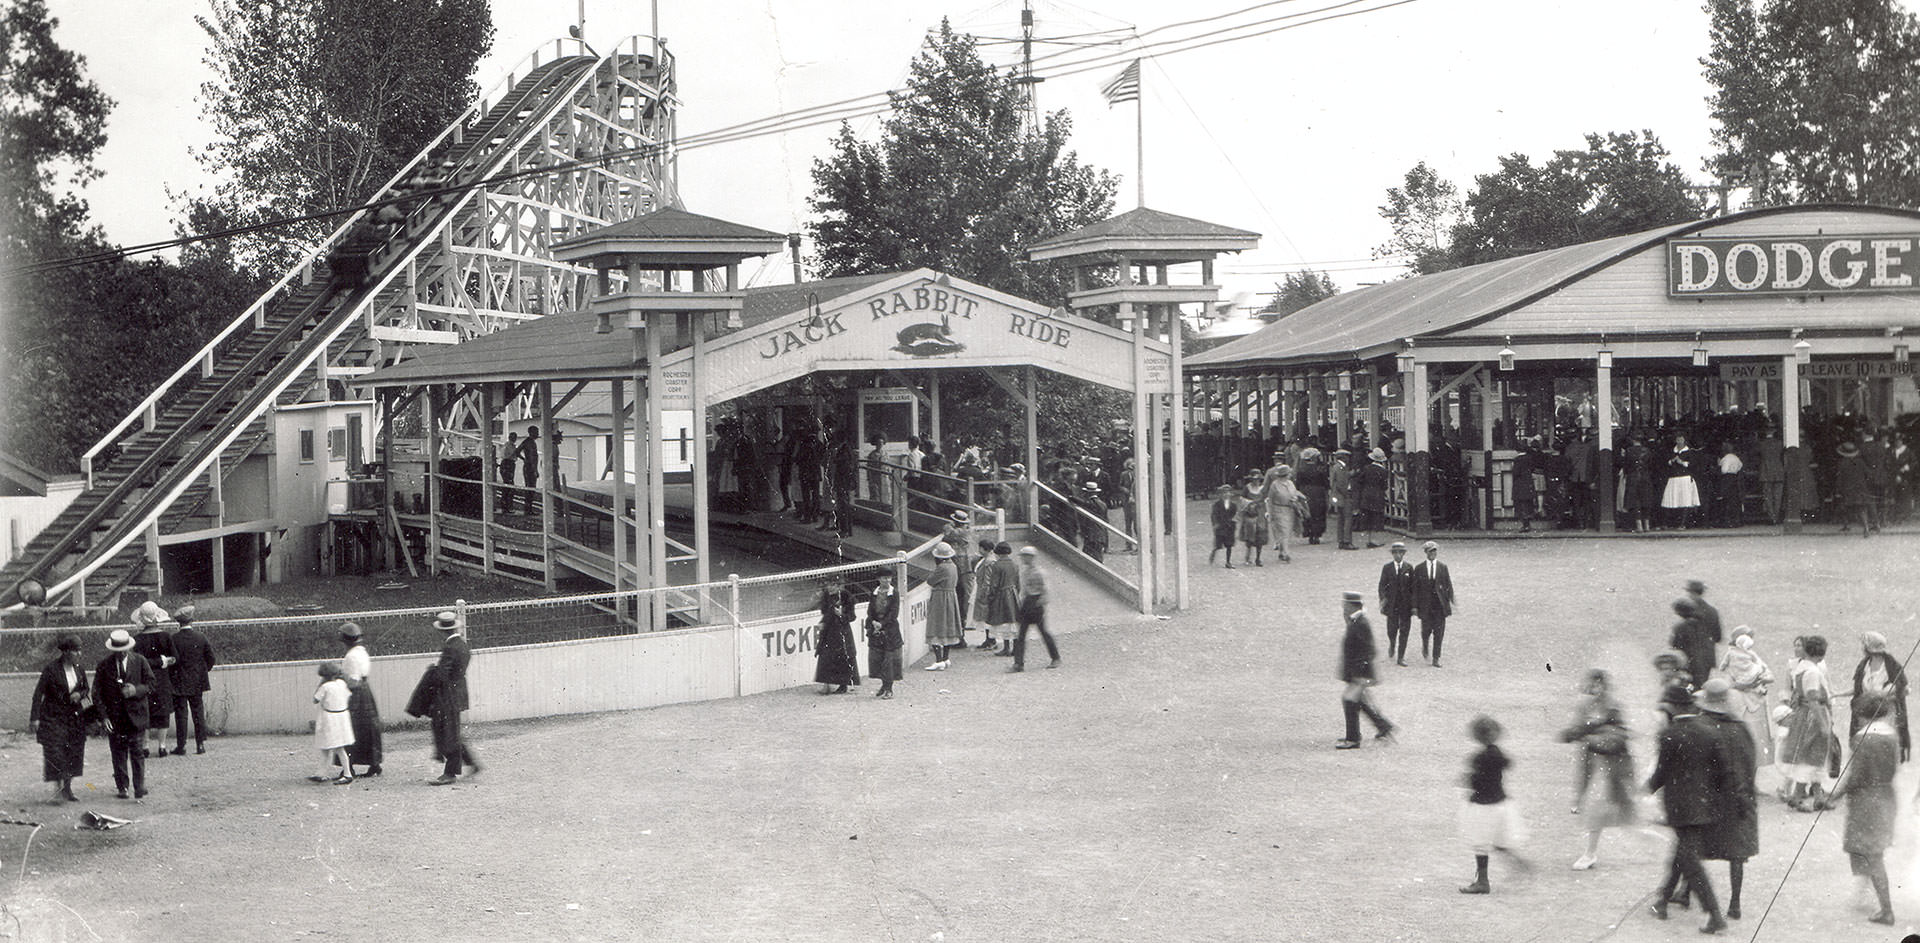 Old black and white photograph of Seabreeze Jack Rabbit roller coaster ride in the 1920s.